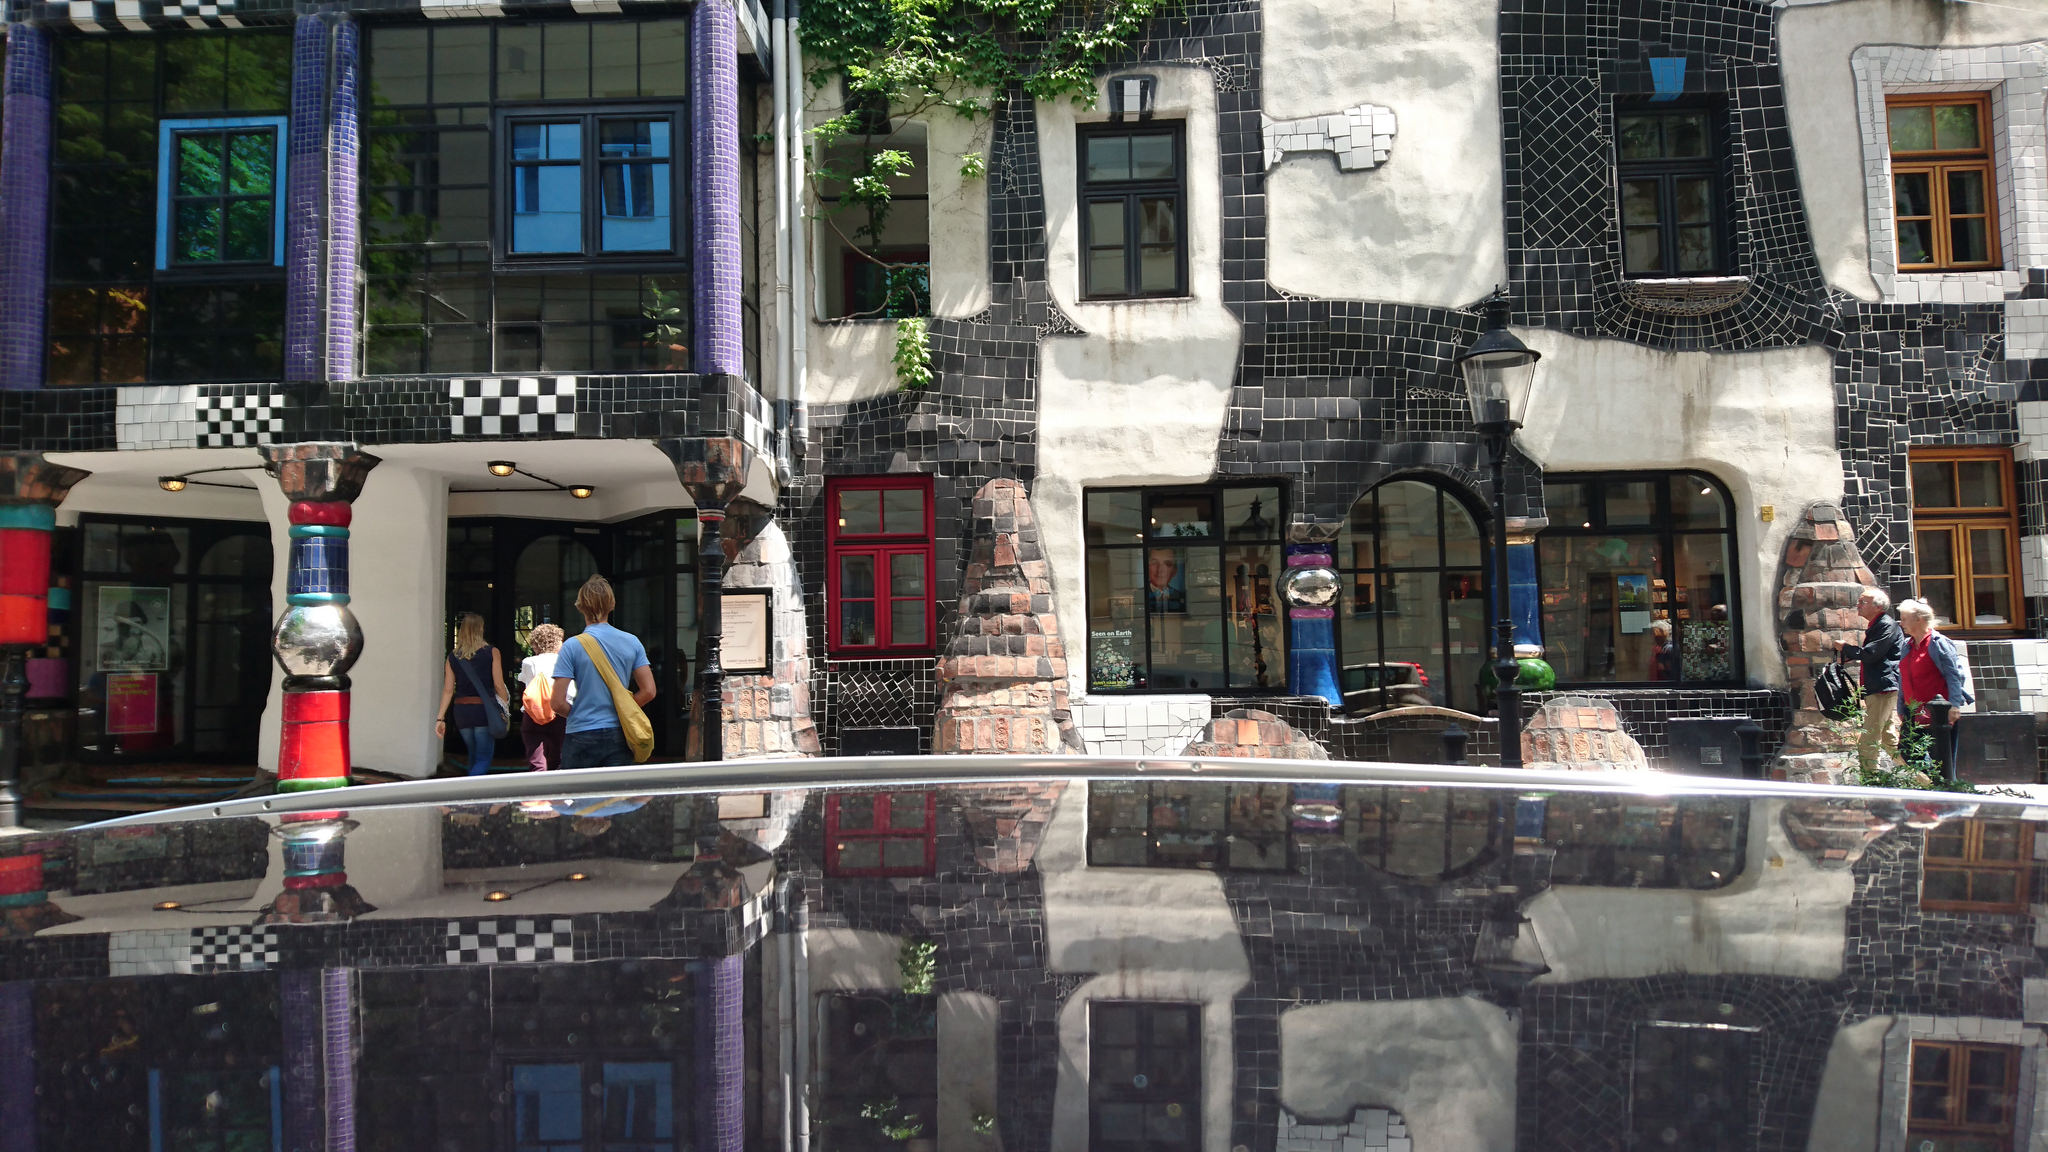 A visit to Vienna has to take in the wonderful architecture and vision of Friedensreich Hundertwasser.